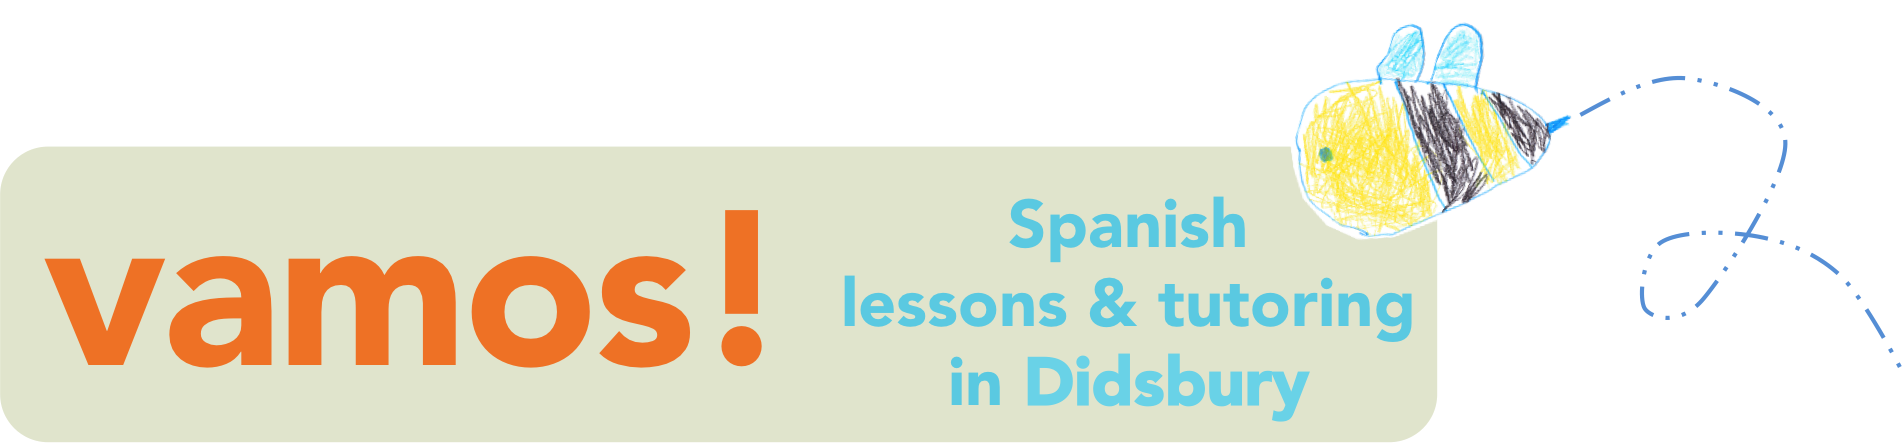 Spanish tutoring in south Manchester